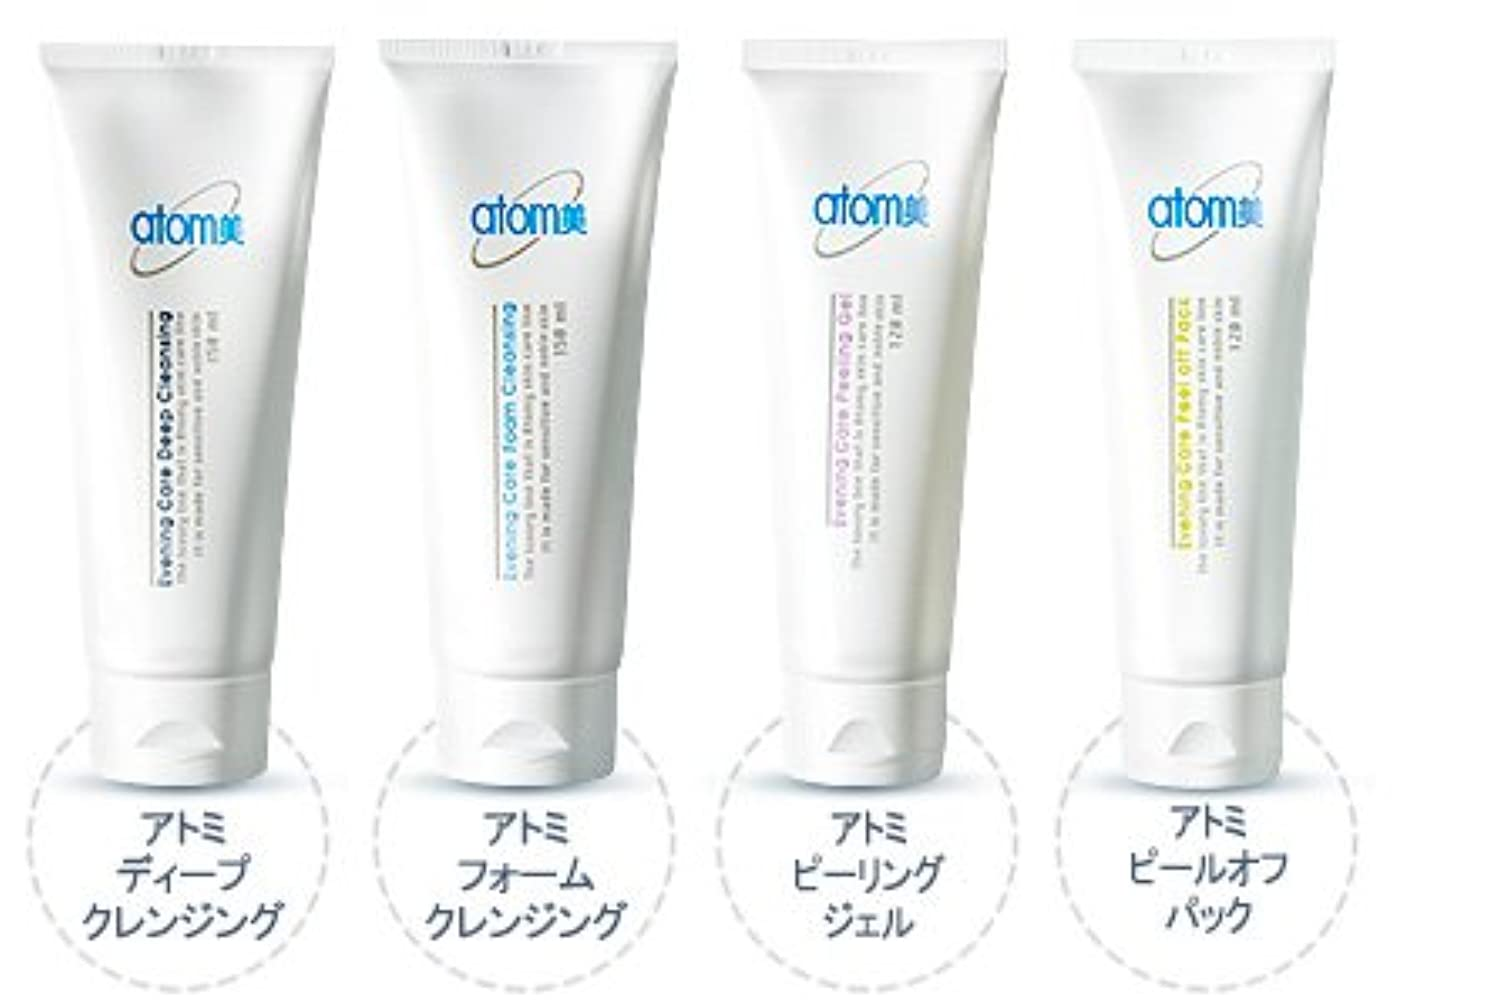 Atomi Atomy Atom美 アトミ アトミイブニングケア4種セット